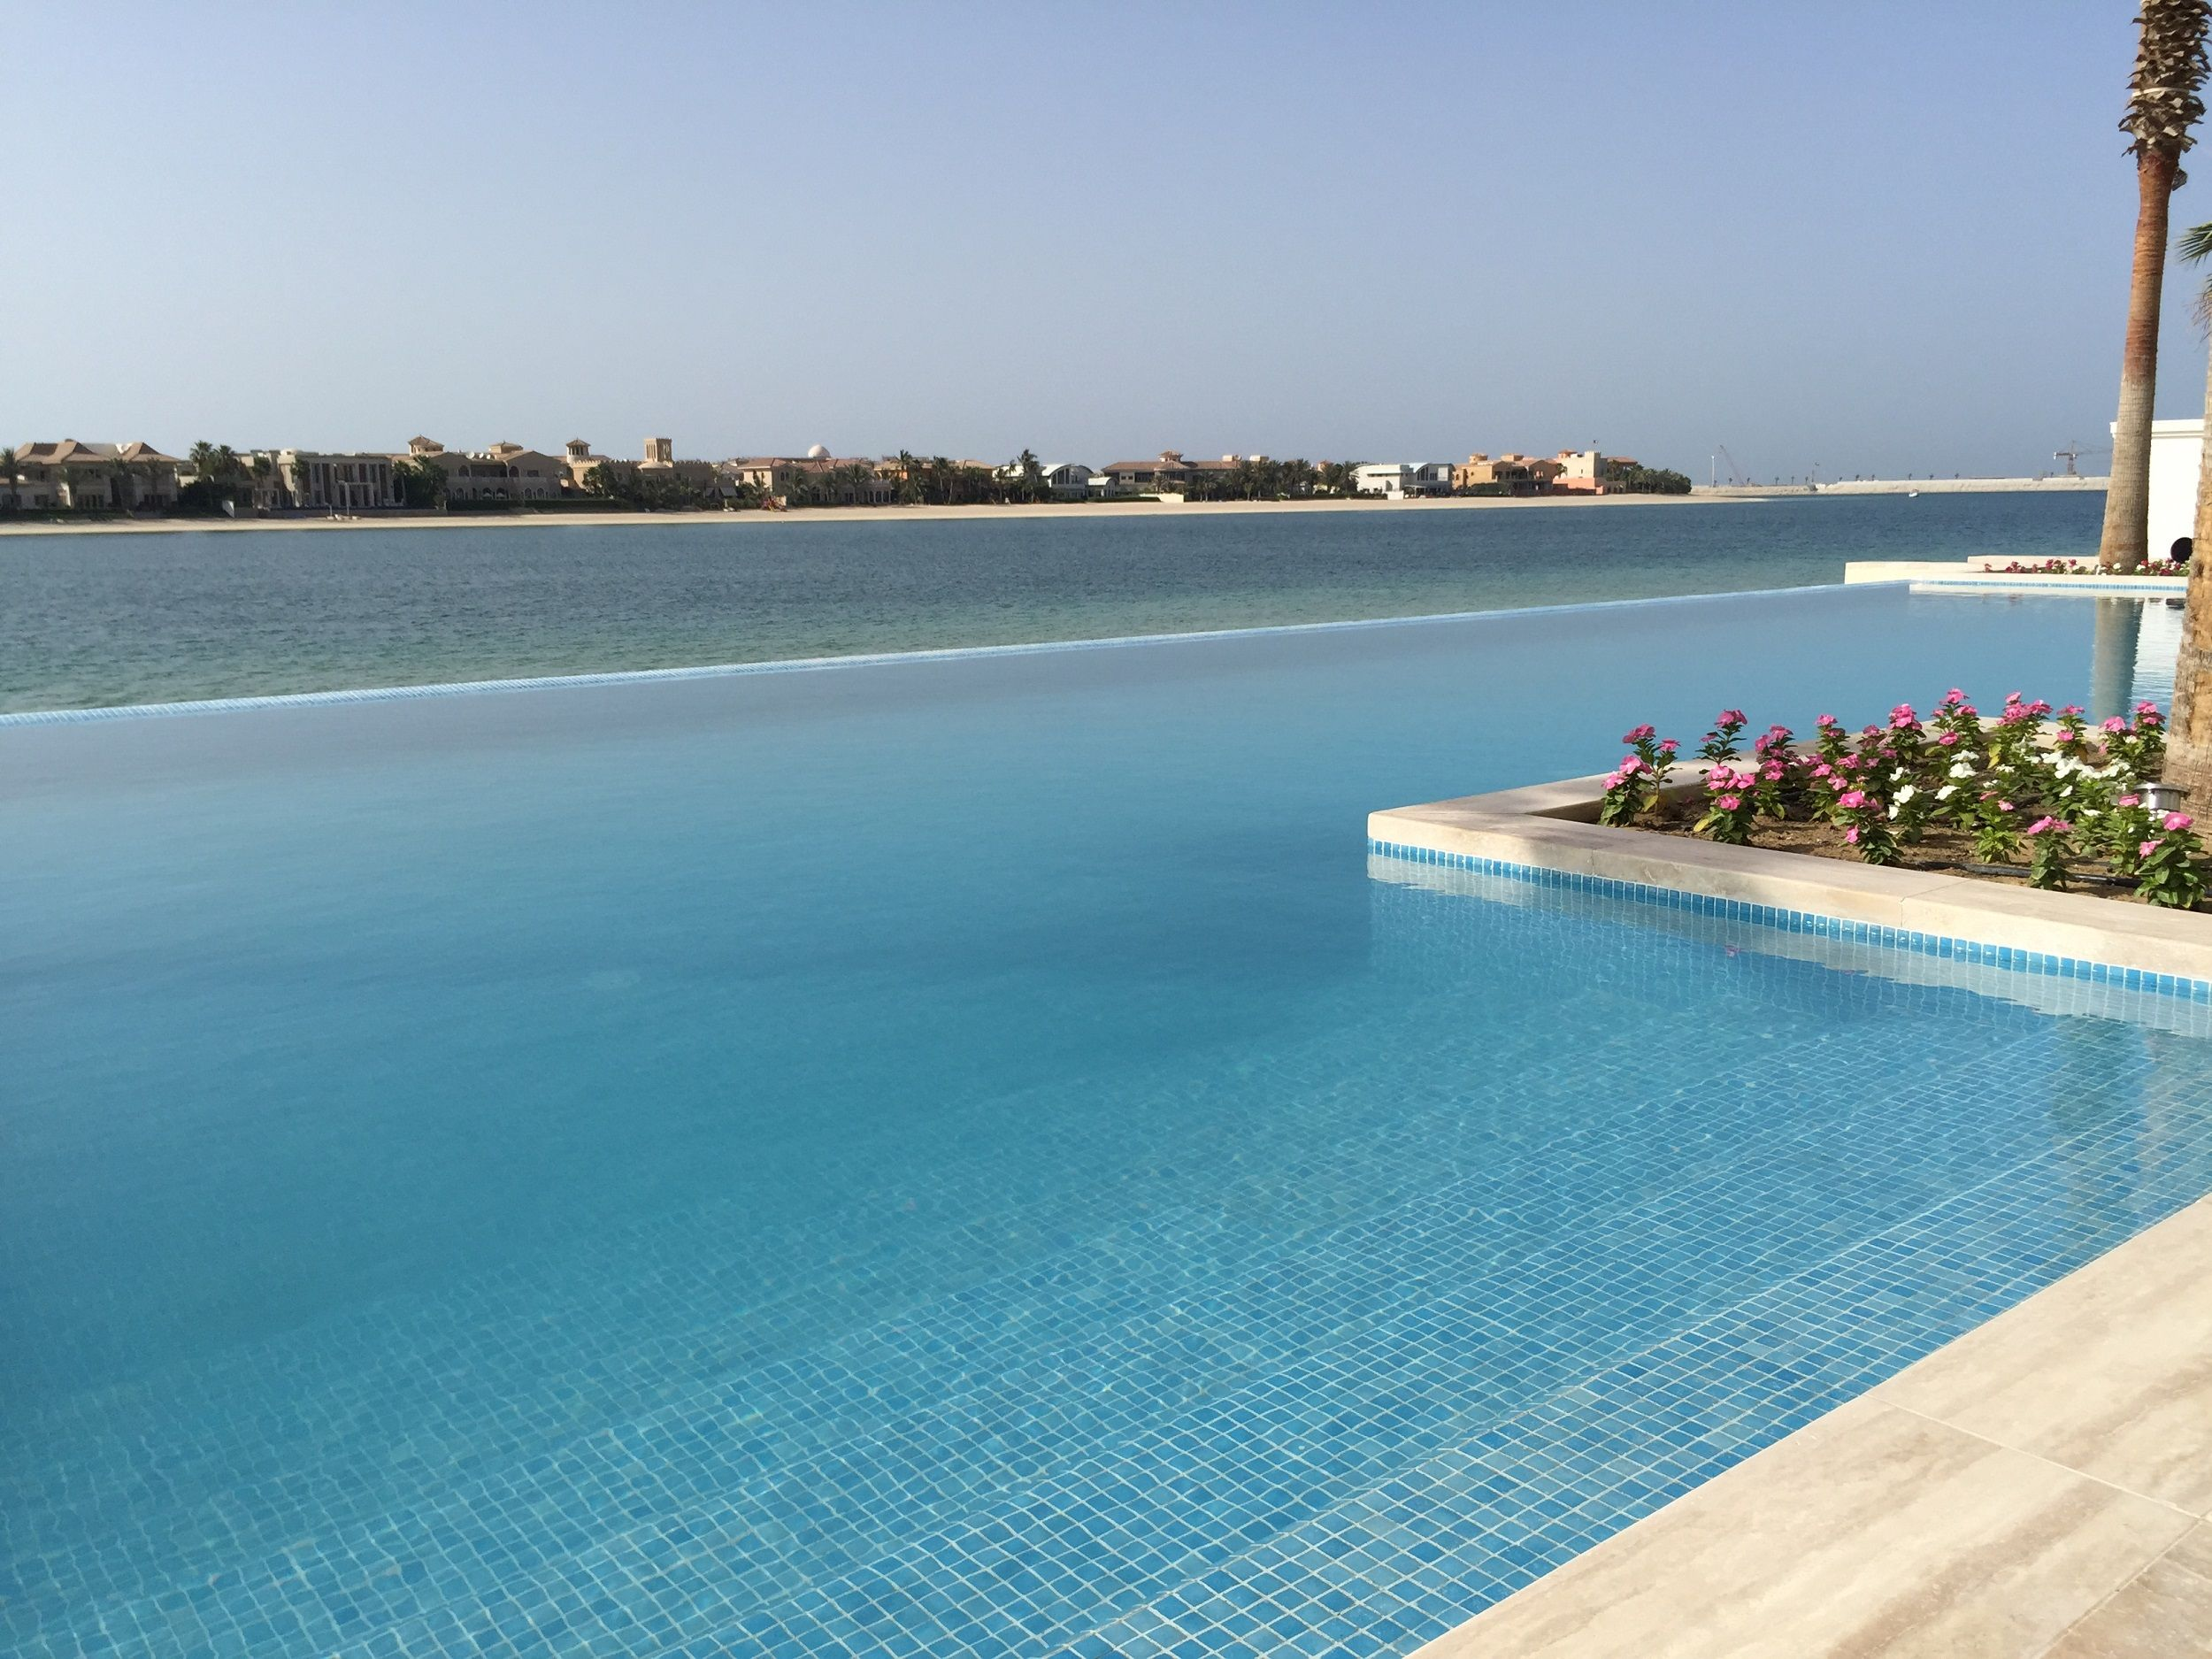 Finite prospects, Infinite outcomes! Get yourself an Infinity pool ...